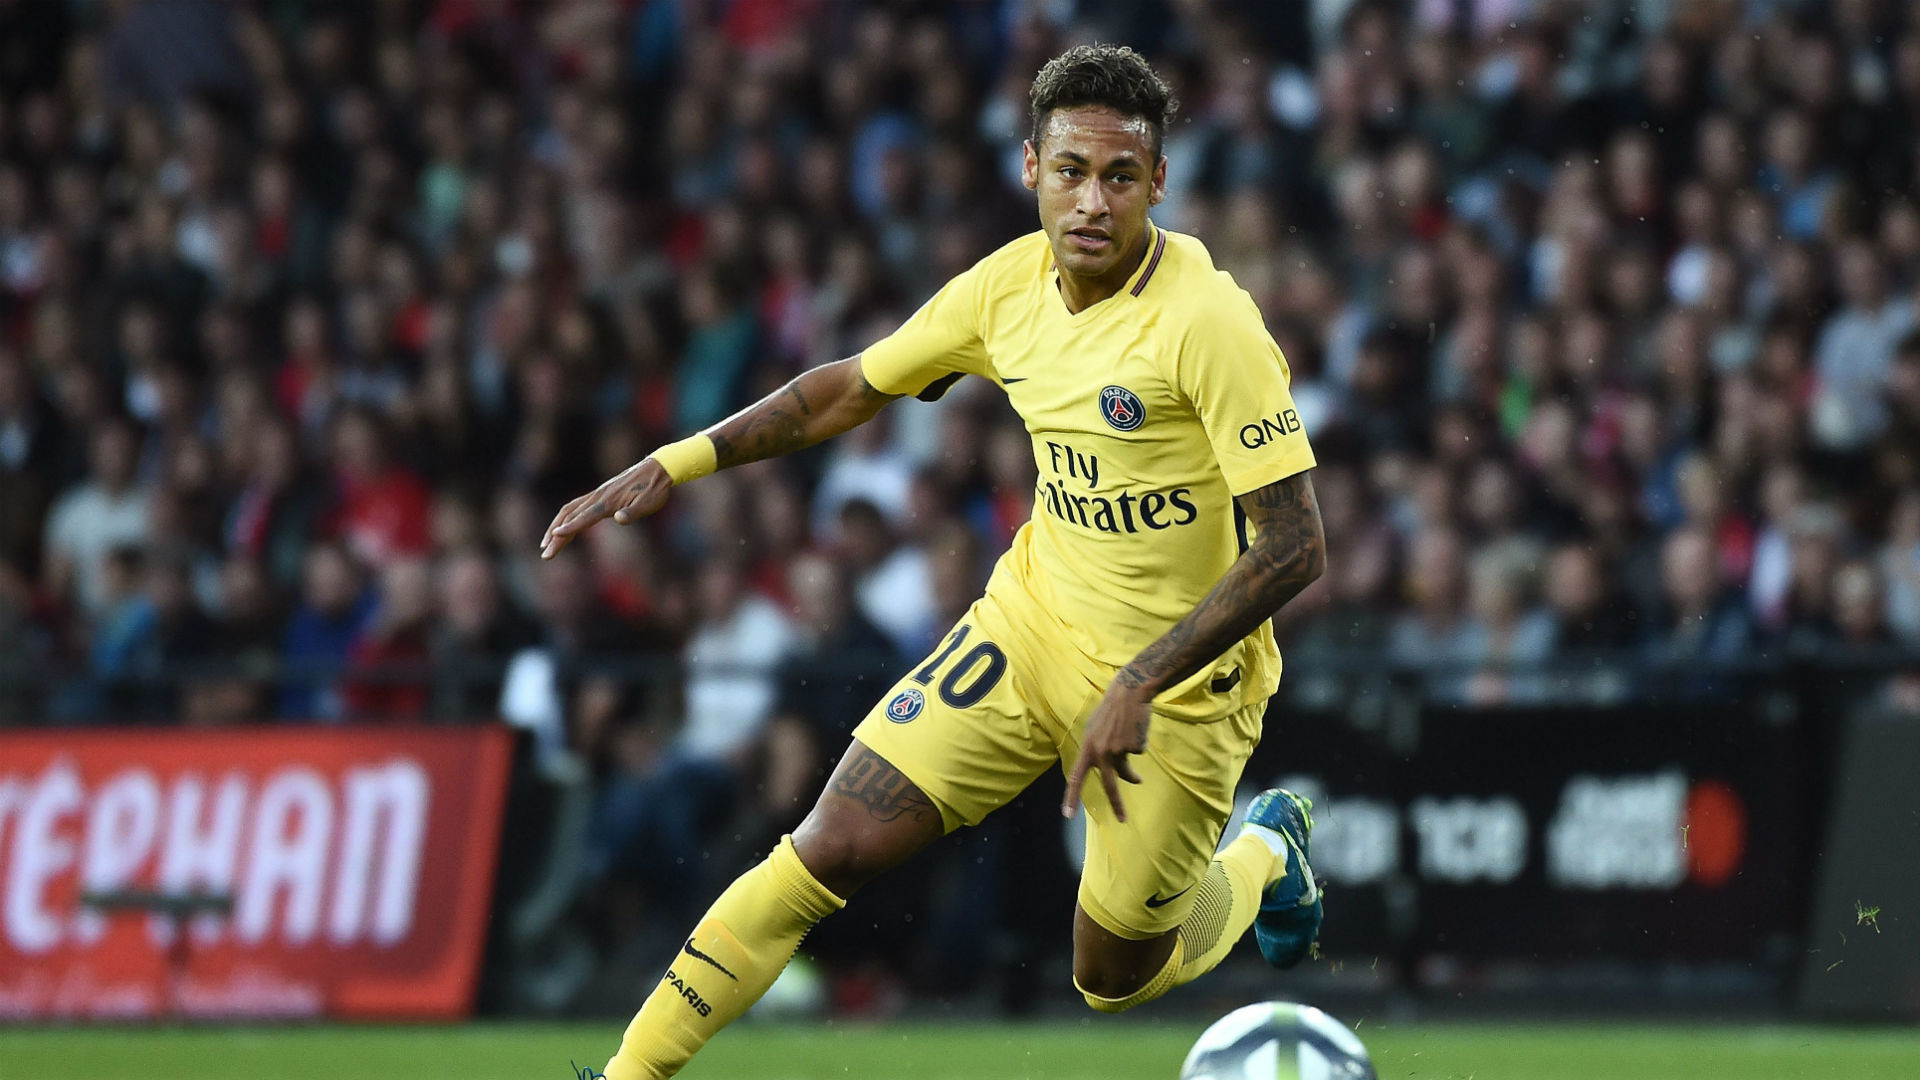 Neymar wastes little time in making his mark at PSG